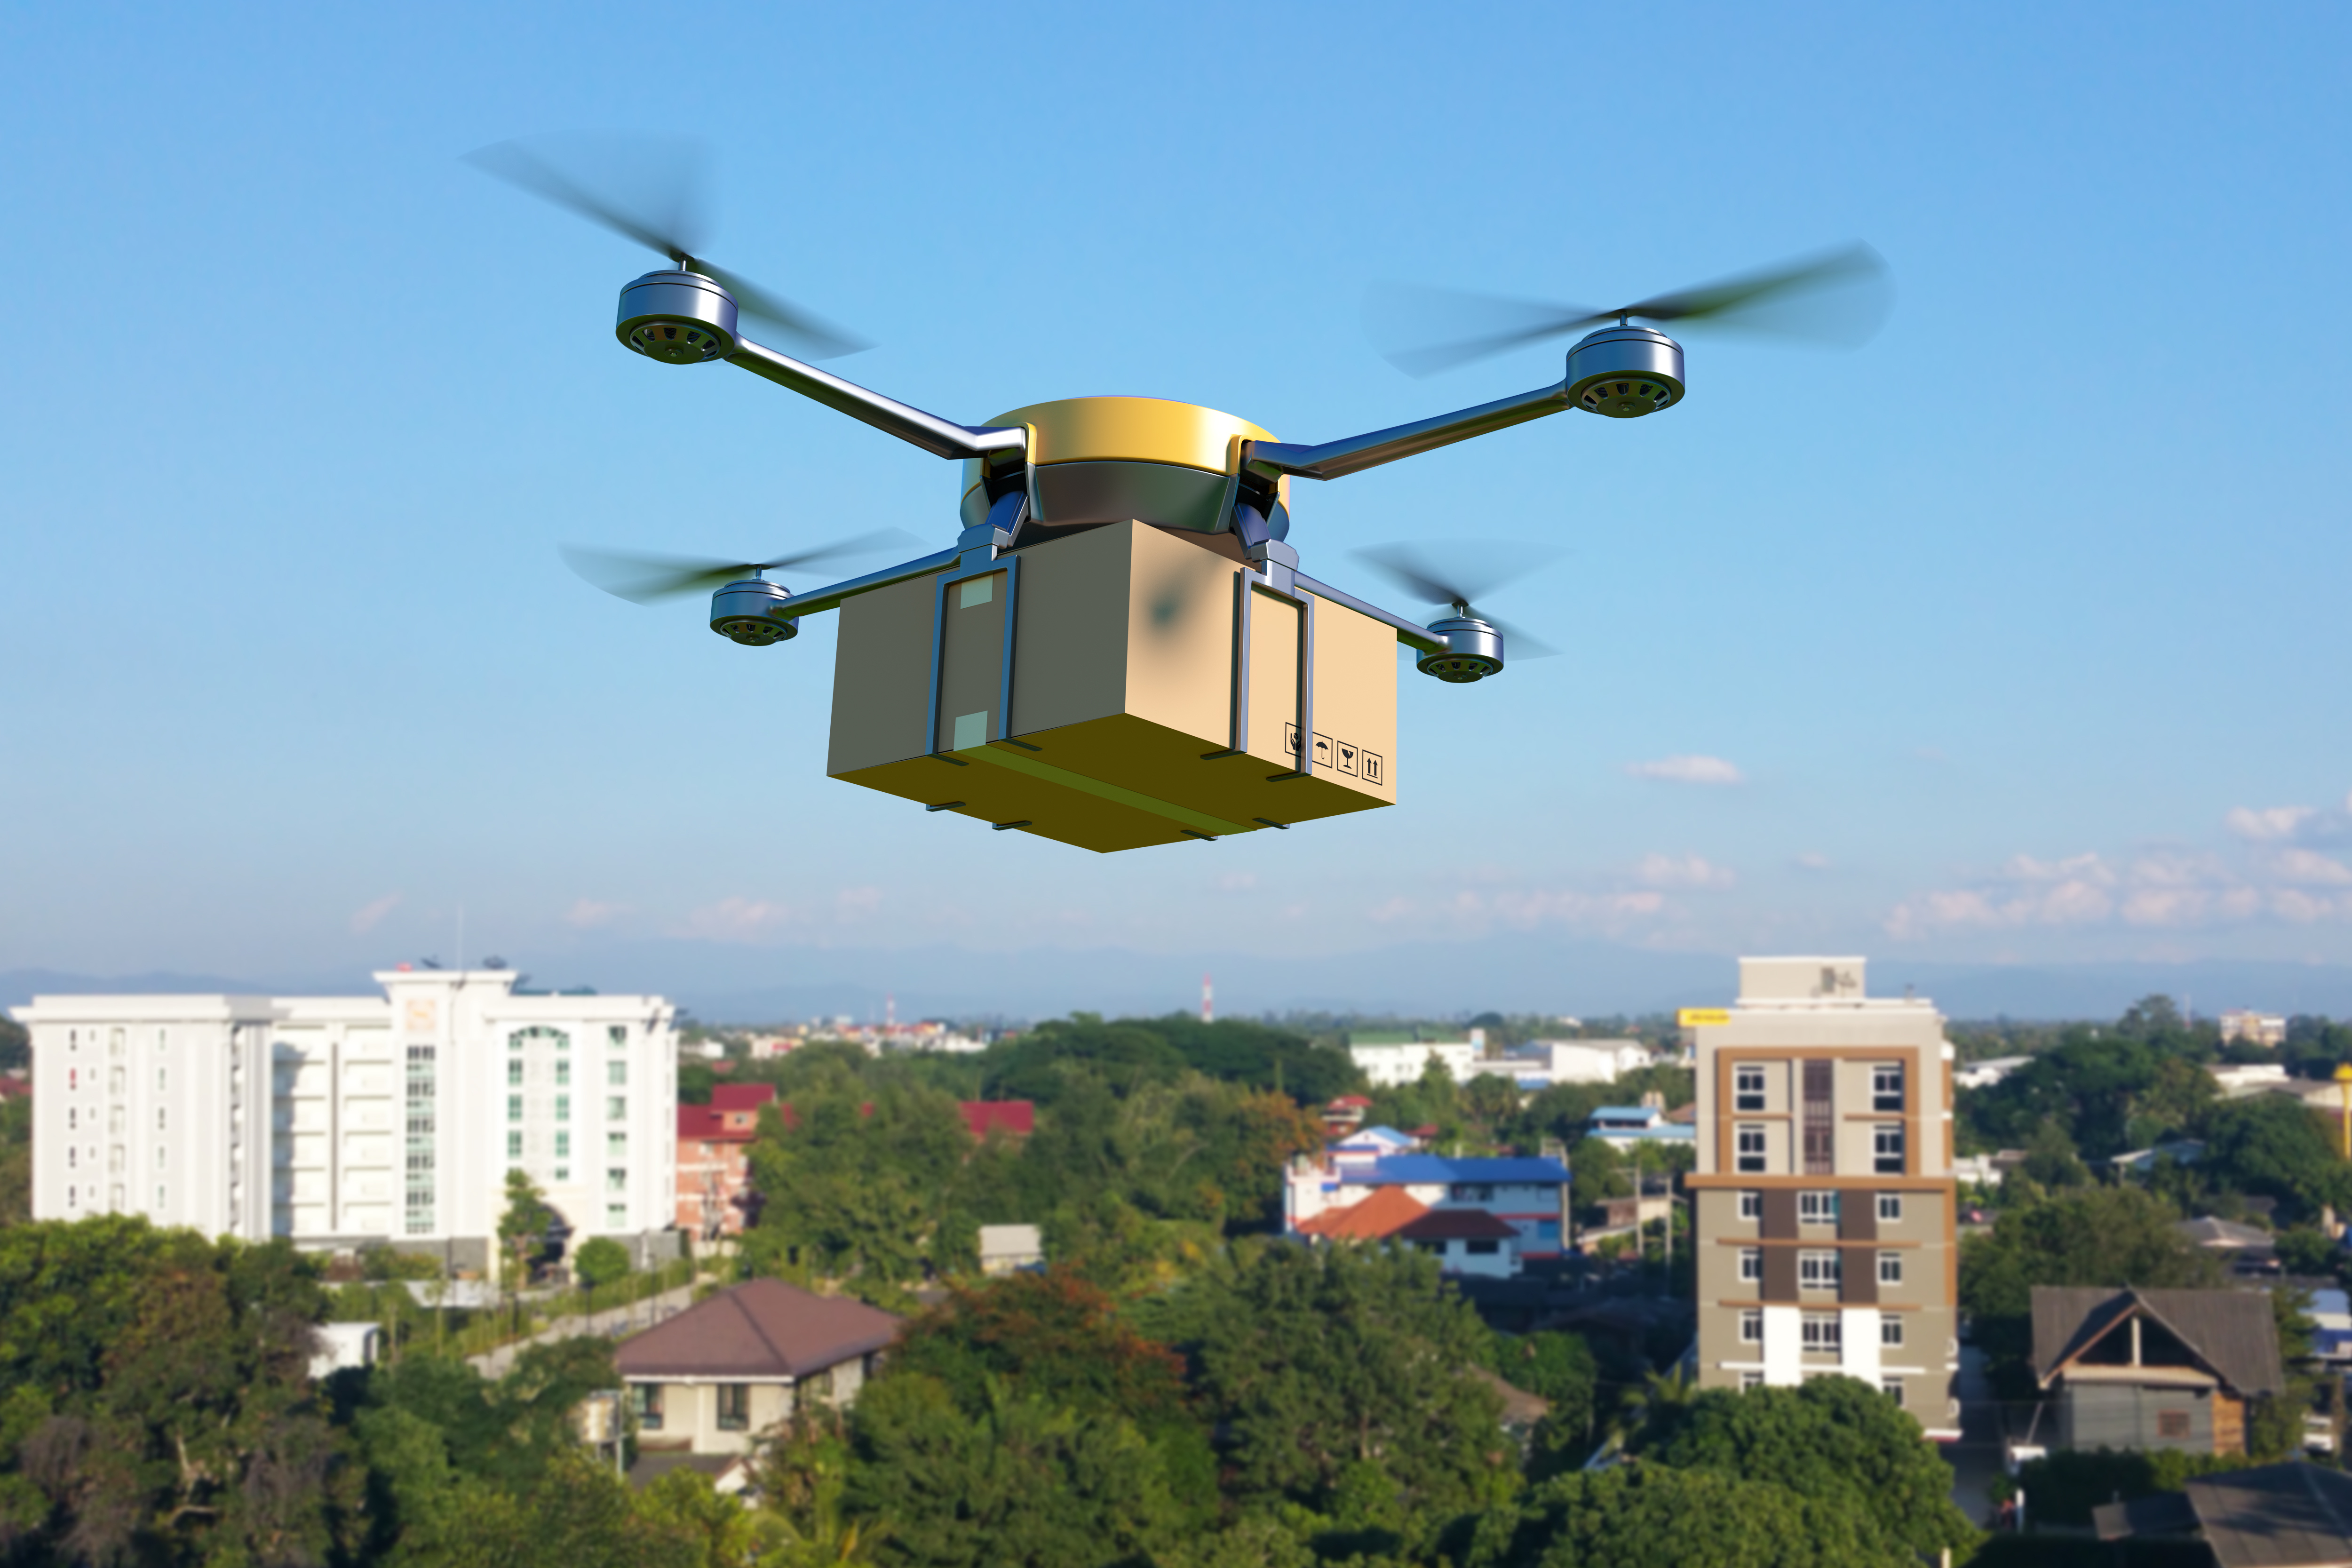 retail market research drone delivery